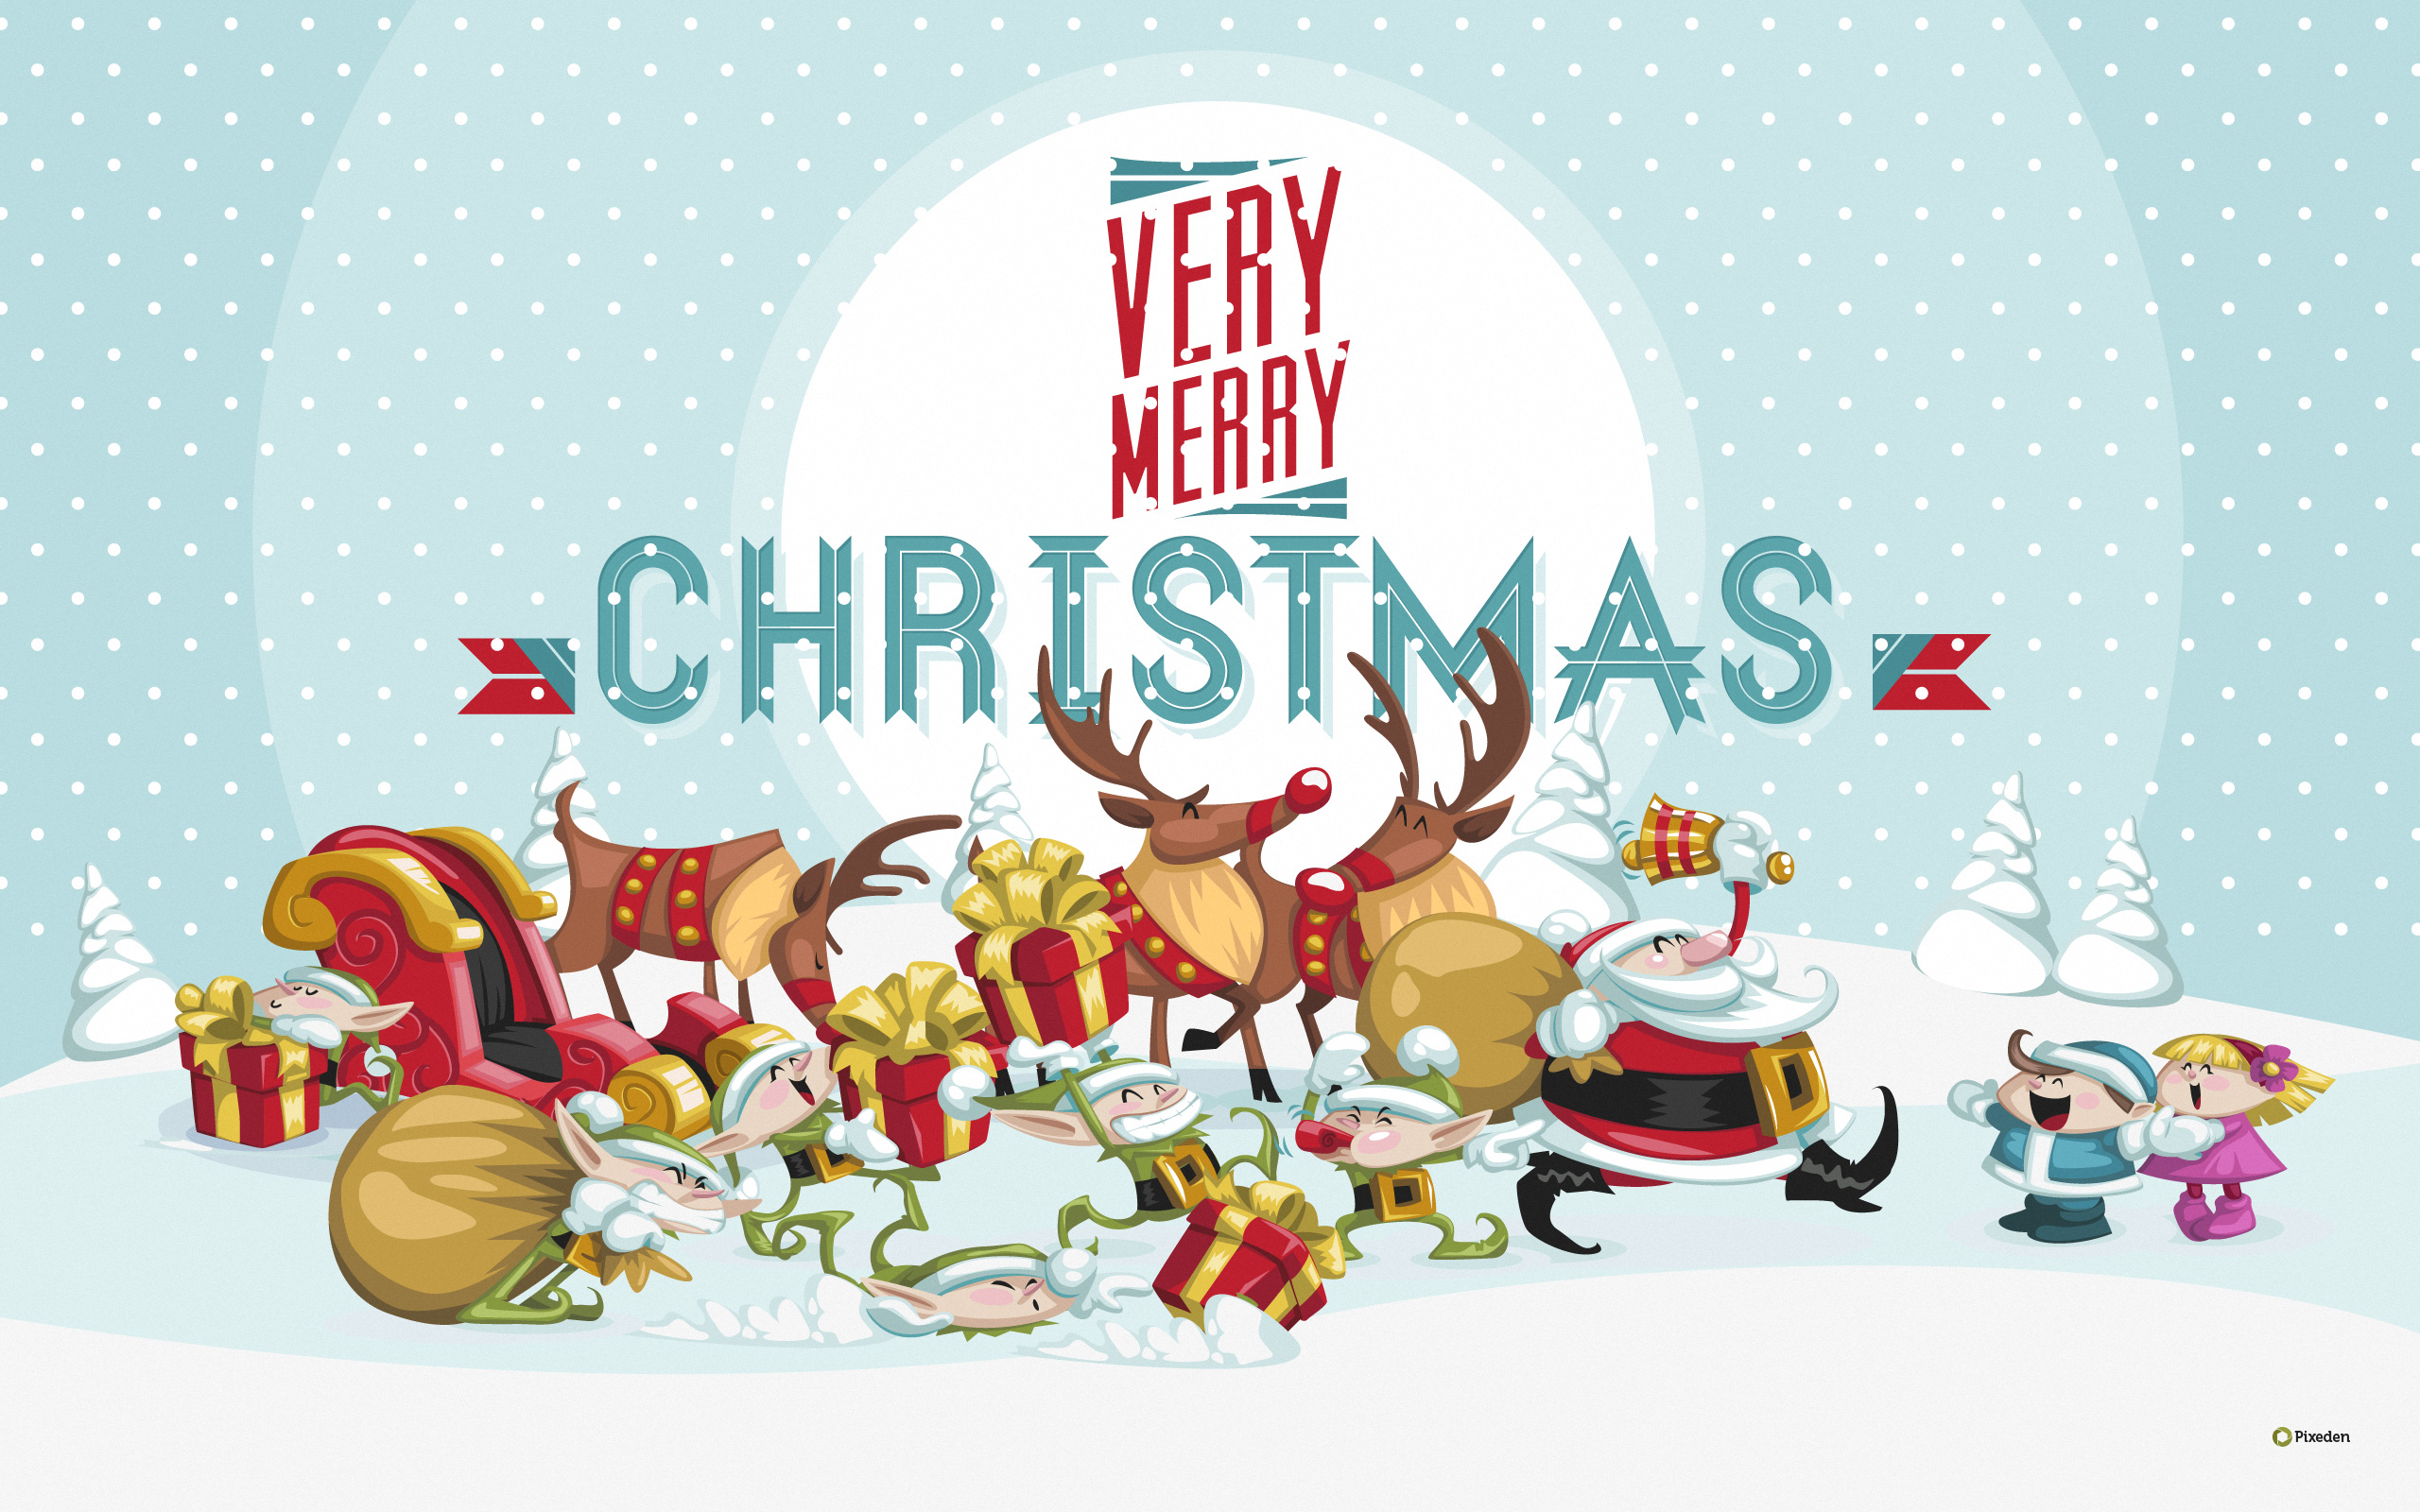 Merry Christmas HD Wallpaper Full Pictures